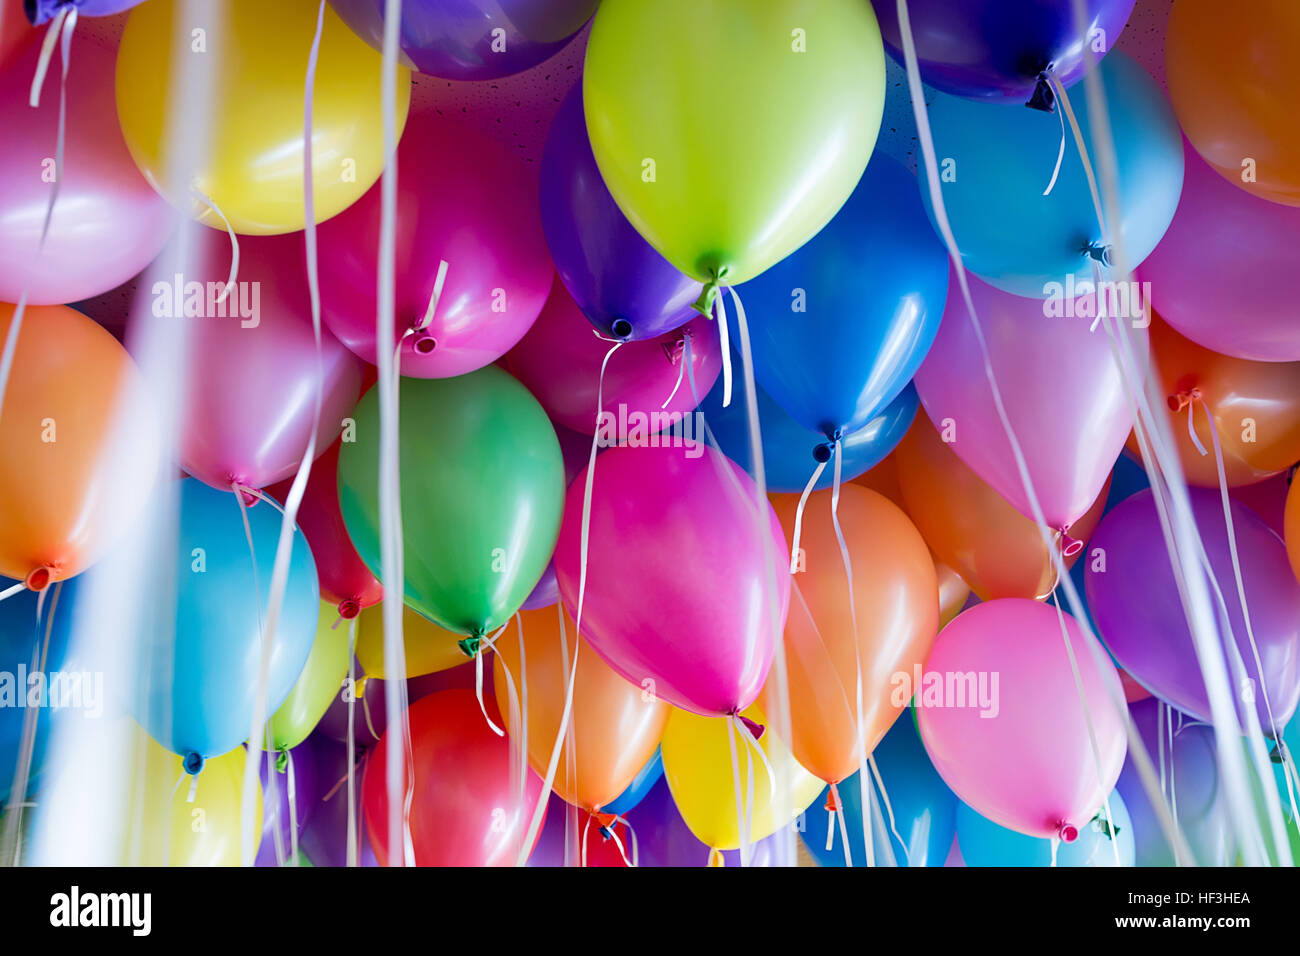 festive, colorful balloons with helium attachment to the white ribbons - Stock Image